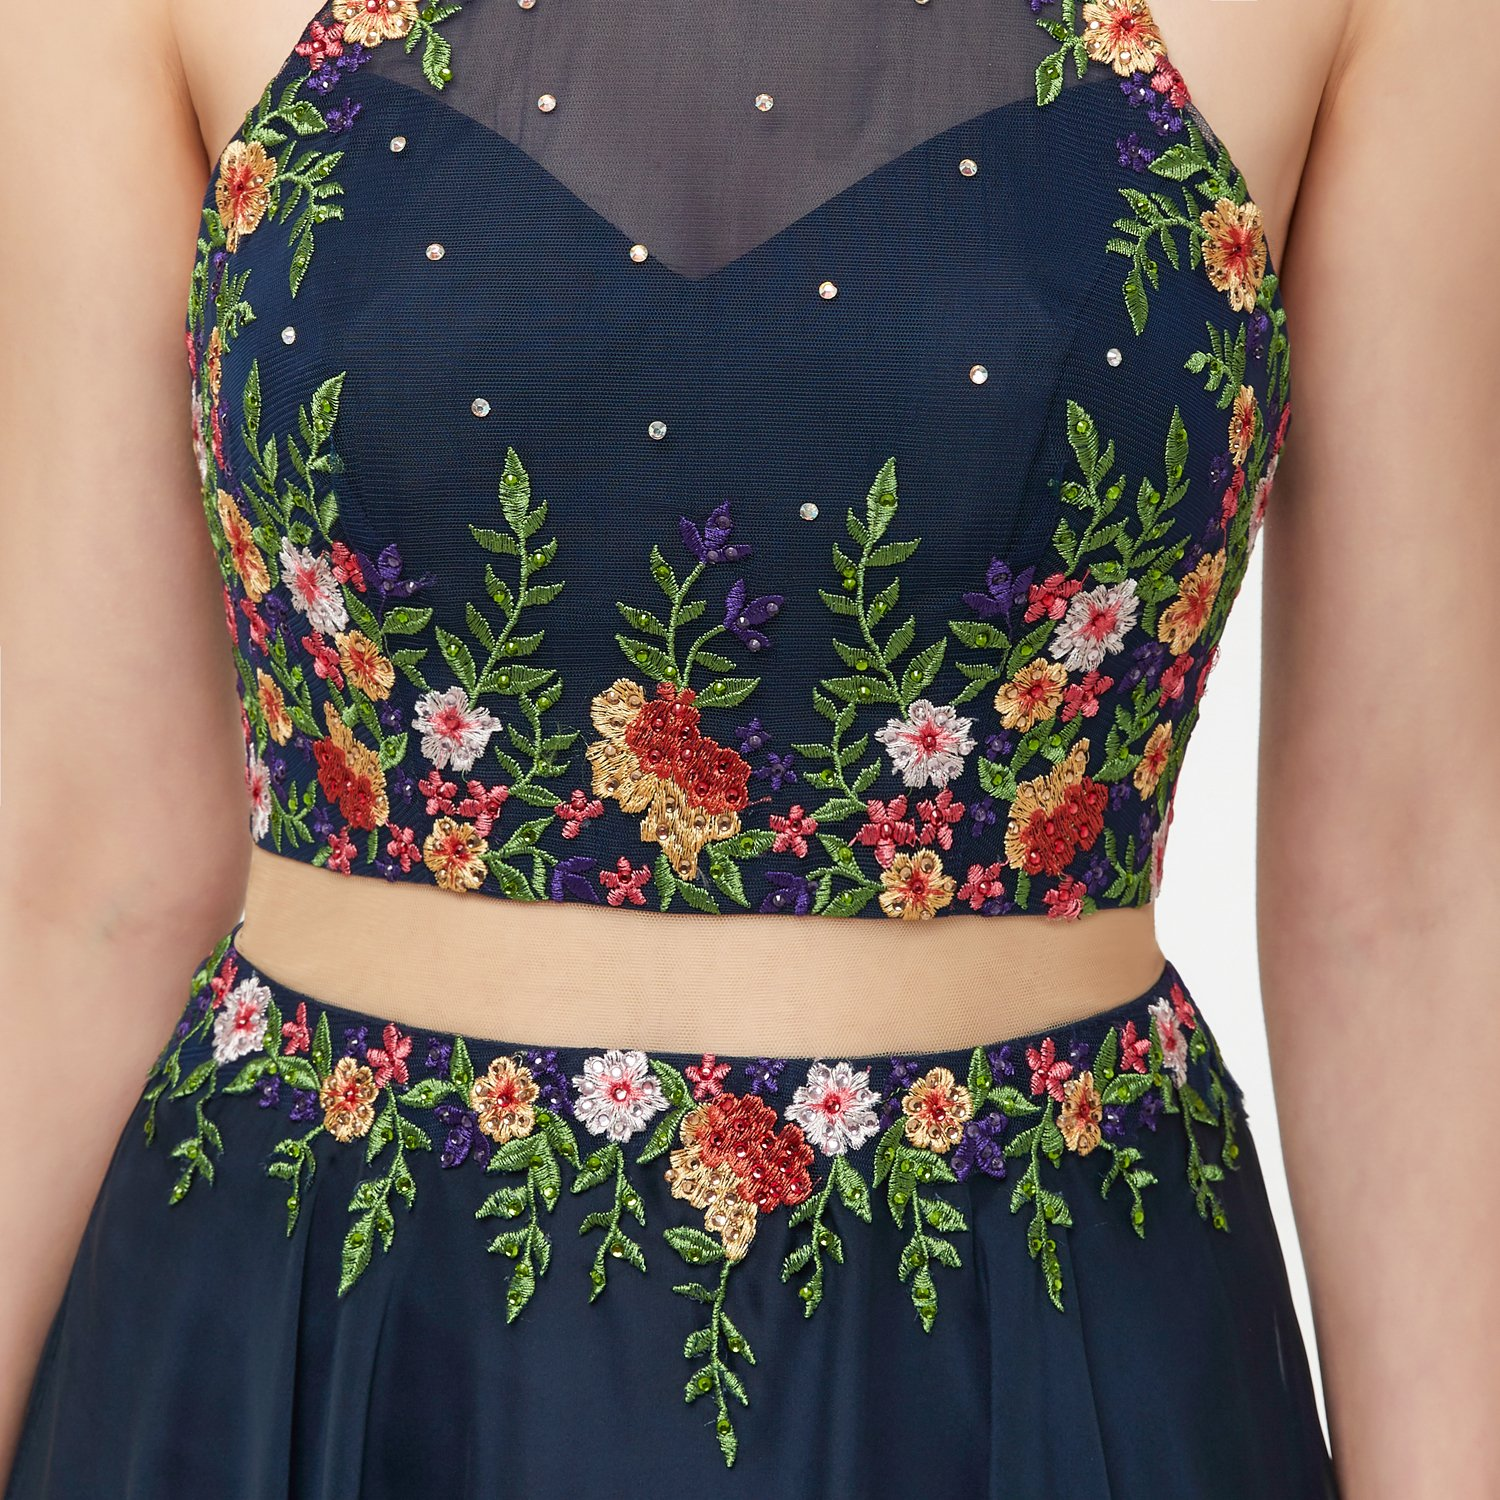 2d90e829c7ccb Okaybrial Women s Plus Size Evening Dress Halter Embroidery Two Piece  Evening Party Dress at Amazon Women s Clothing store